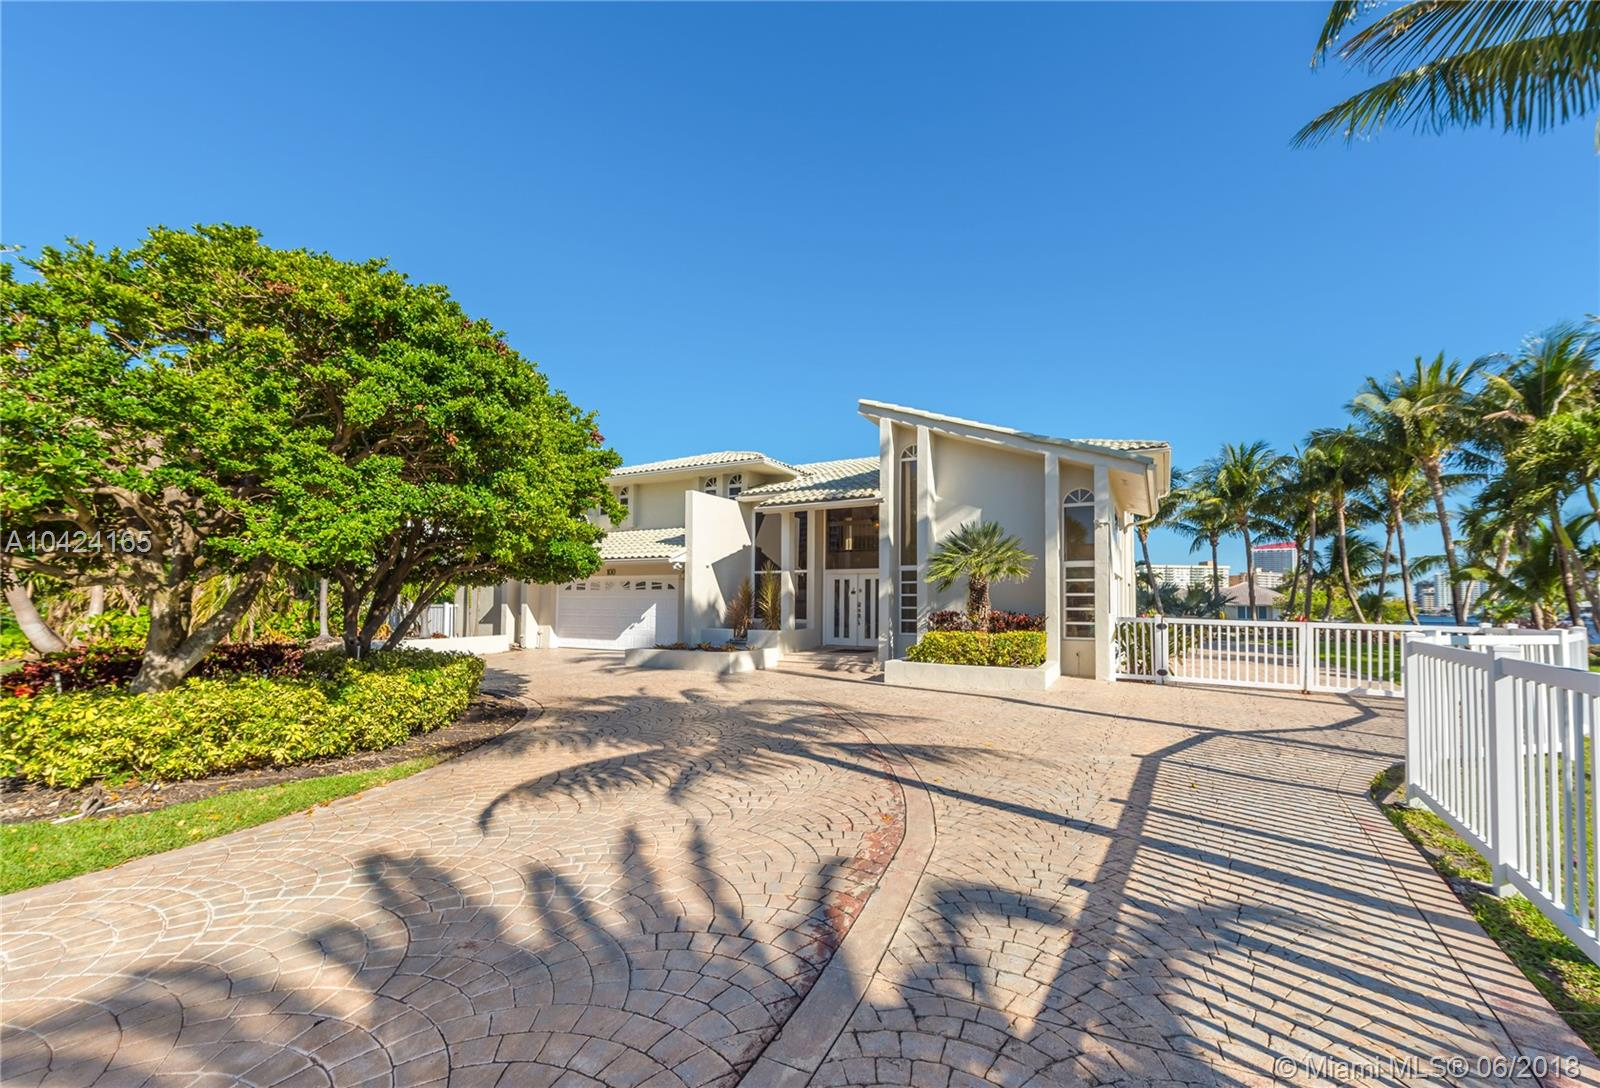 JUST LISTED!----Unique, Breathtaking intracoastal point property with ocean access and 300 feet of well kept seawall. This almost 1/2 acre, four bedroom, three bath, two story home sits at the street on a quiet cul de sac with magnificent views abounding from every room. One of the larges lots (20,000 sq. ft.)  in upscale, guard gated, Golden Isles! The Community is complete with tennis courts, private park and children's playground, 5 minute access to all beaches, shopping, nightlife, Malls and Gulfstream Park and Casino. Close to both Fort Lauderdale Airport and Miami Airport.